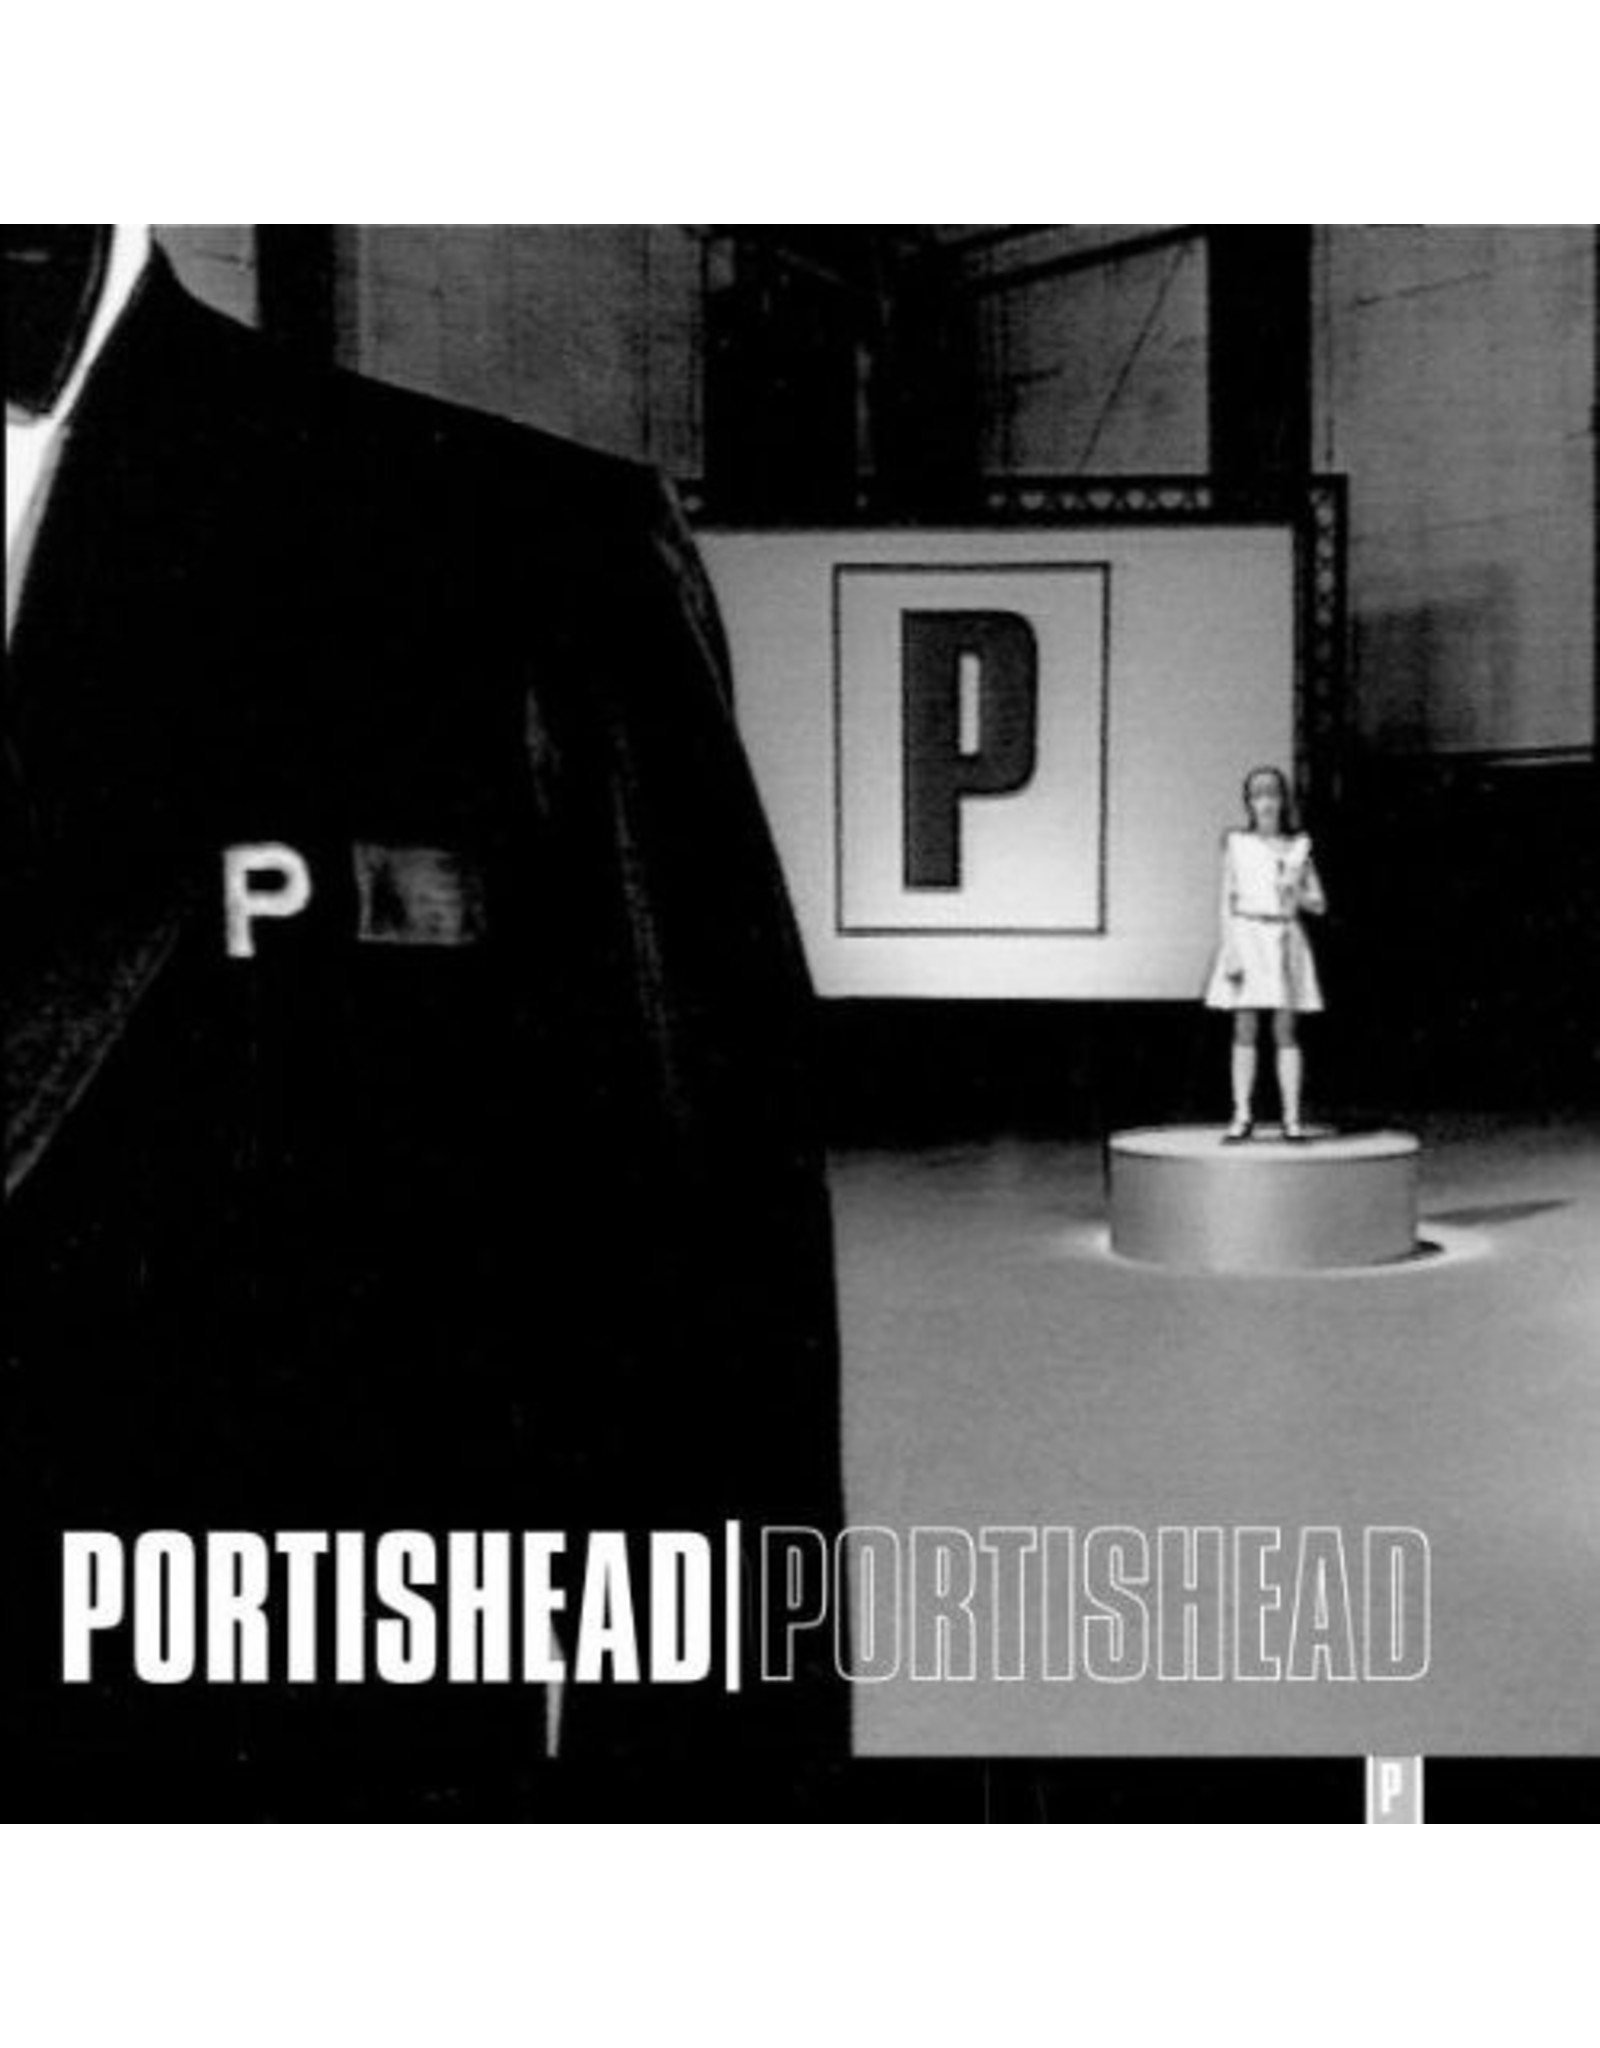 New Vinyl Portishead - S/T 2LP